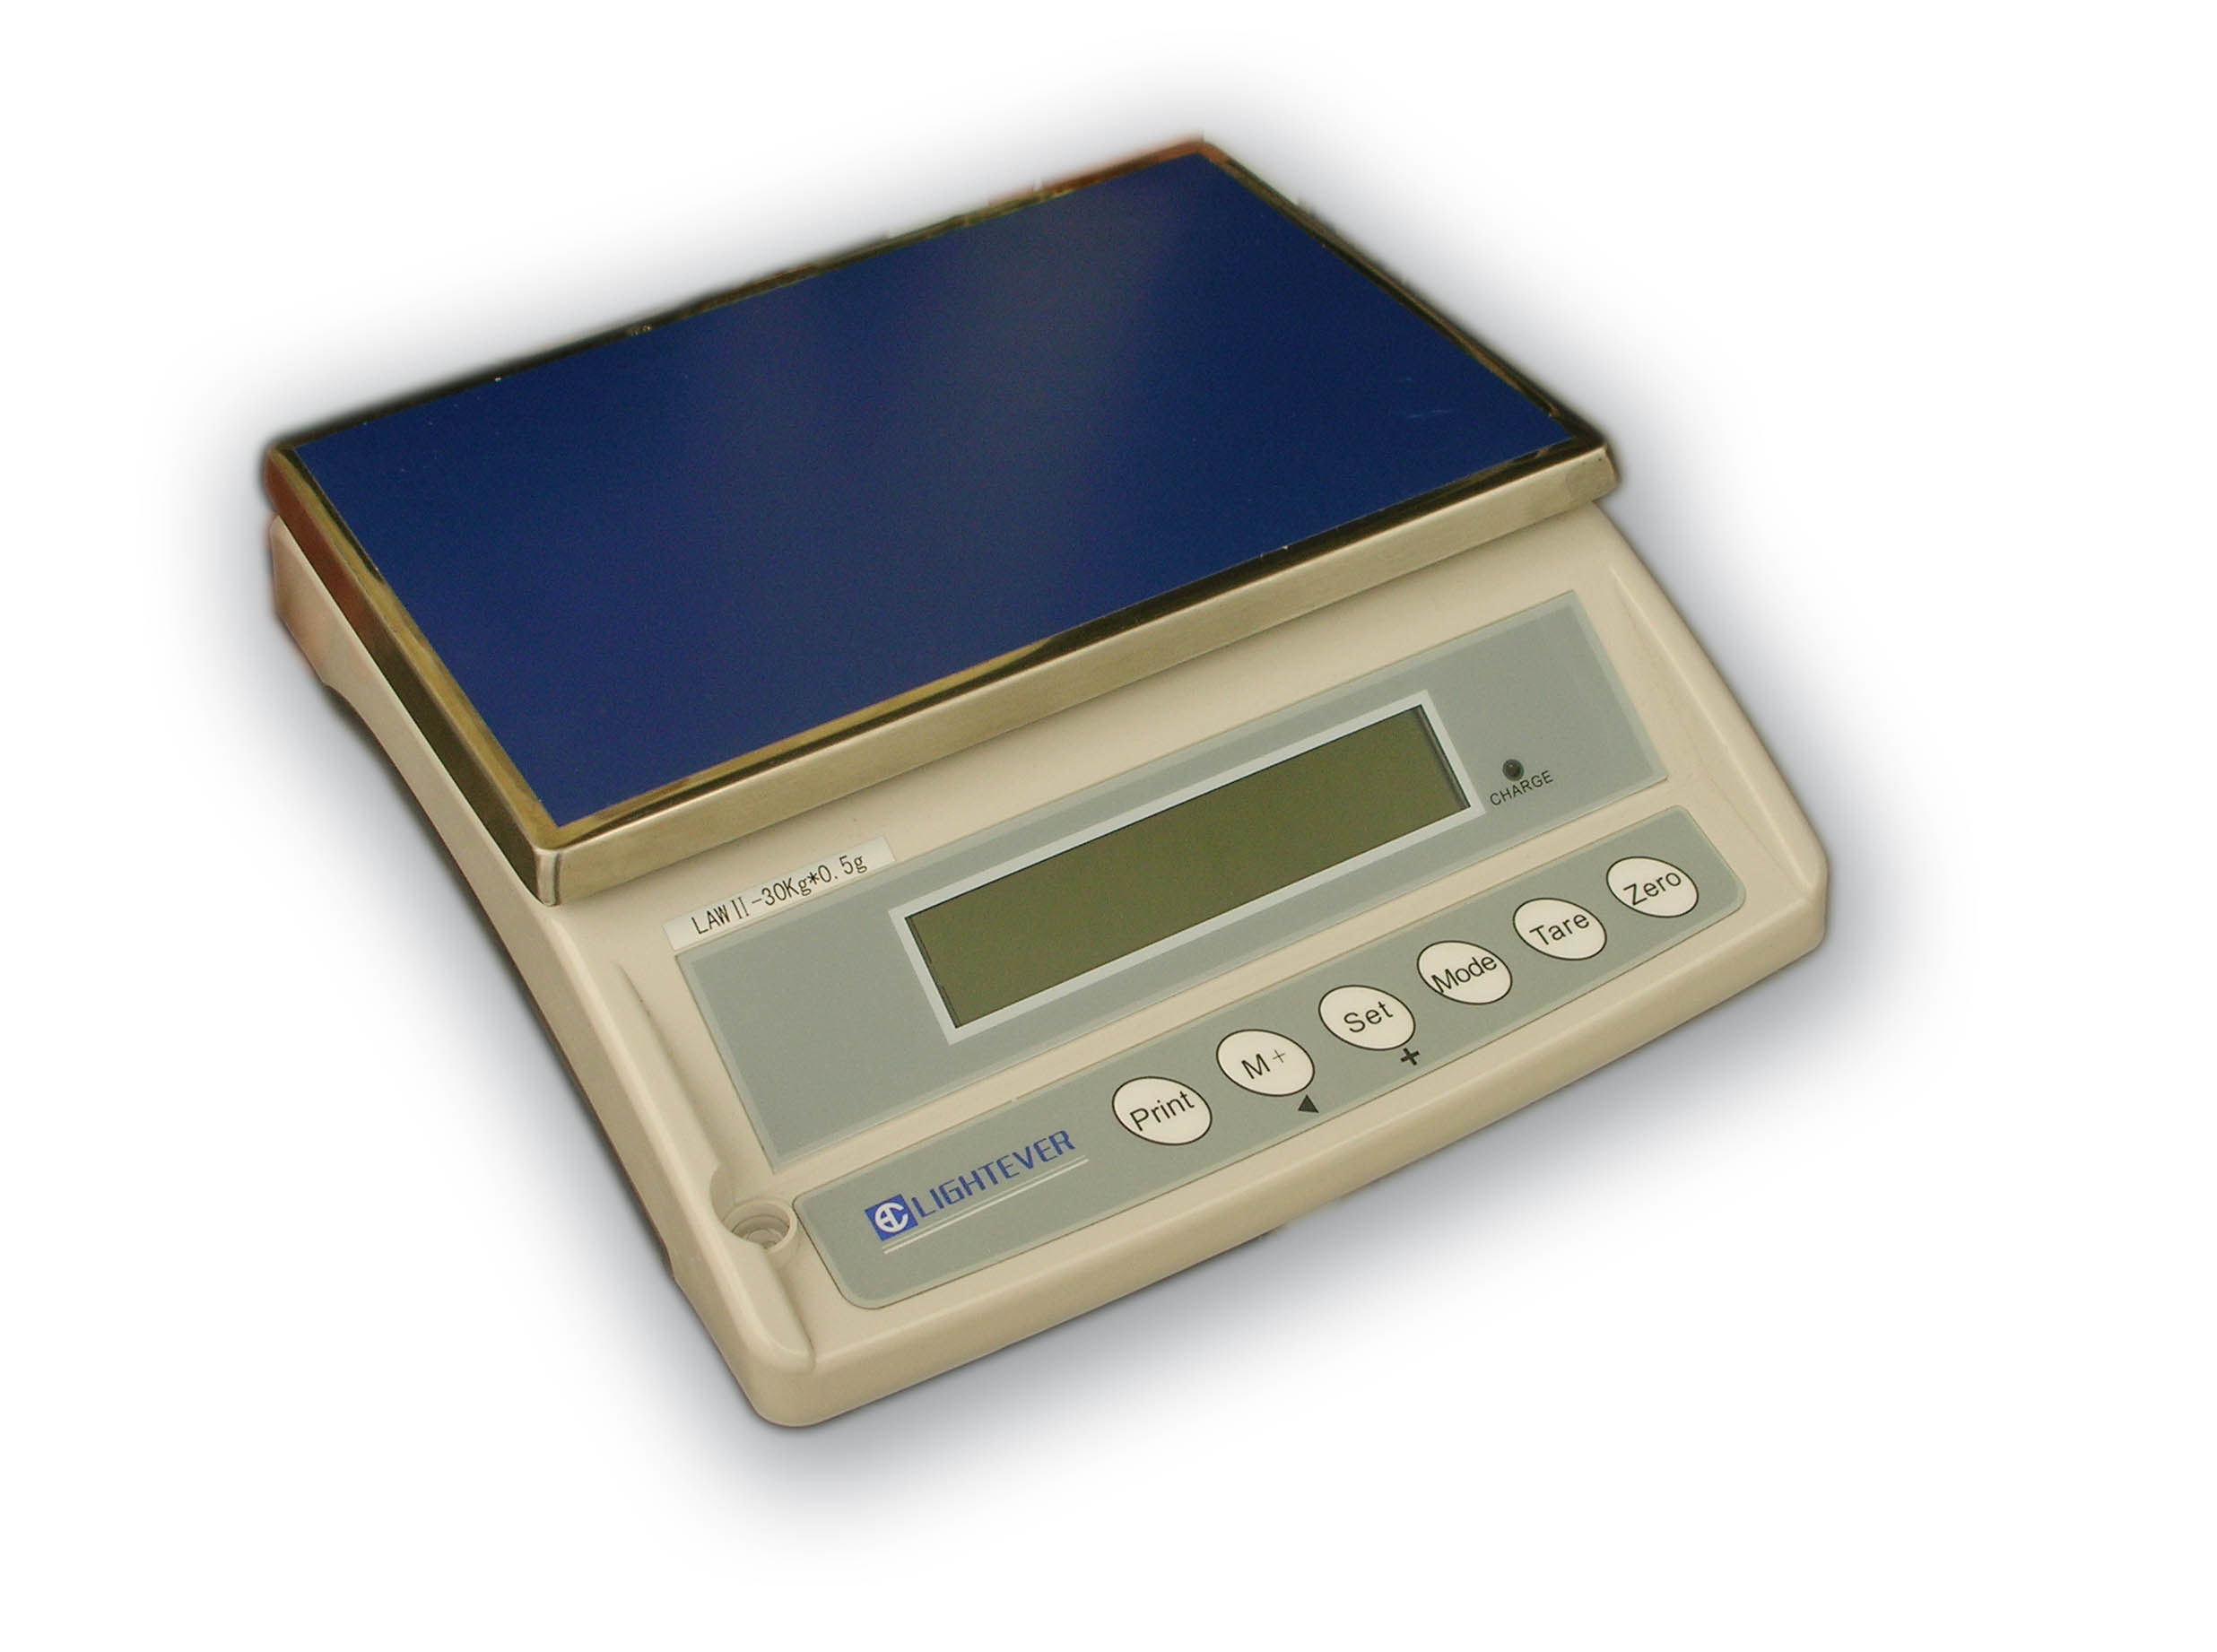 digital weight scale - photo #15